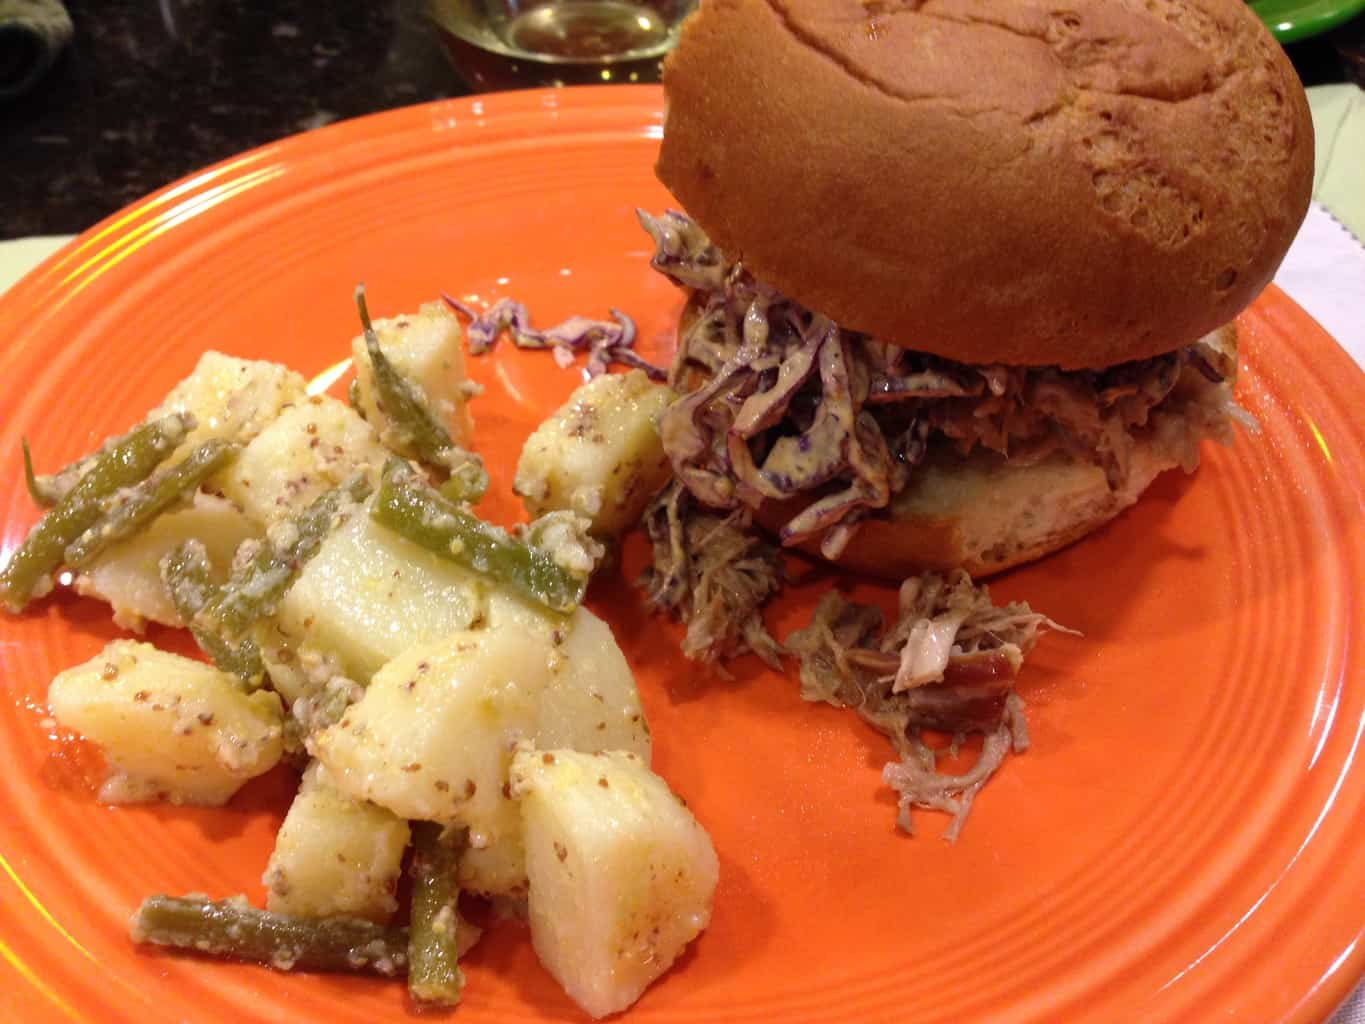 Pulled Pork with Dijon Cole Slaw and Potato Salad